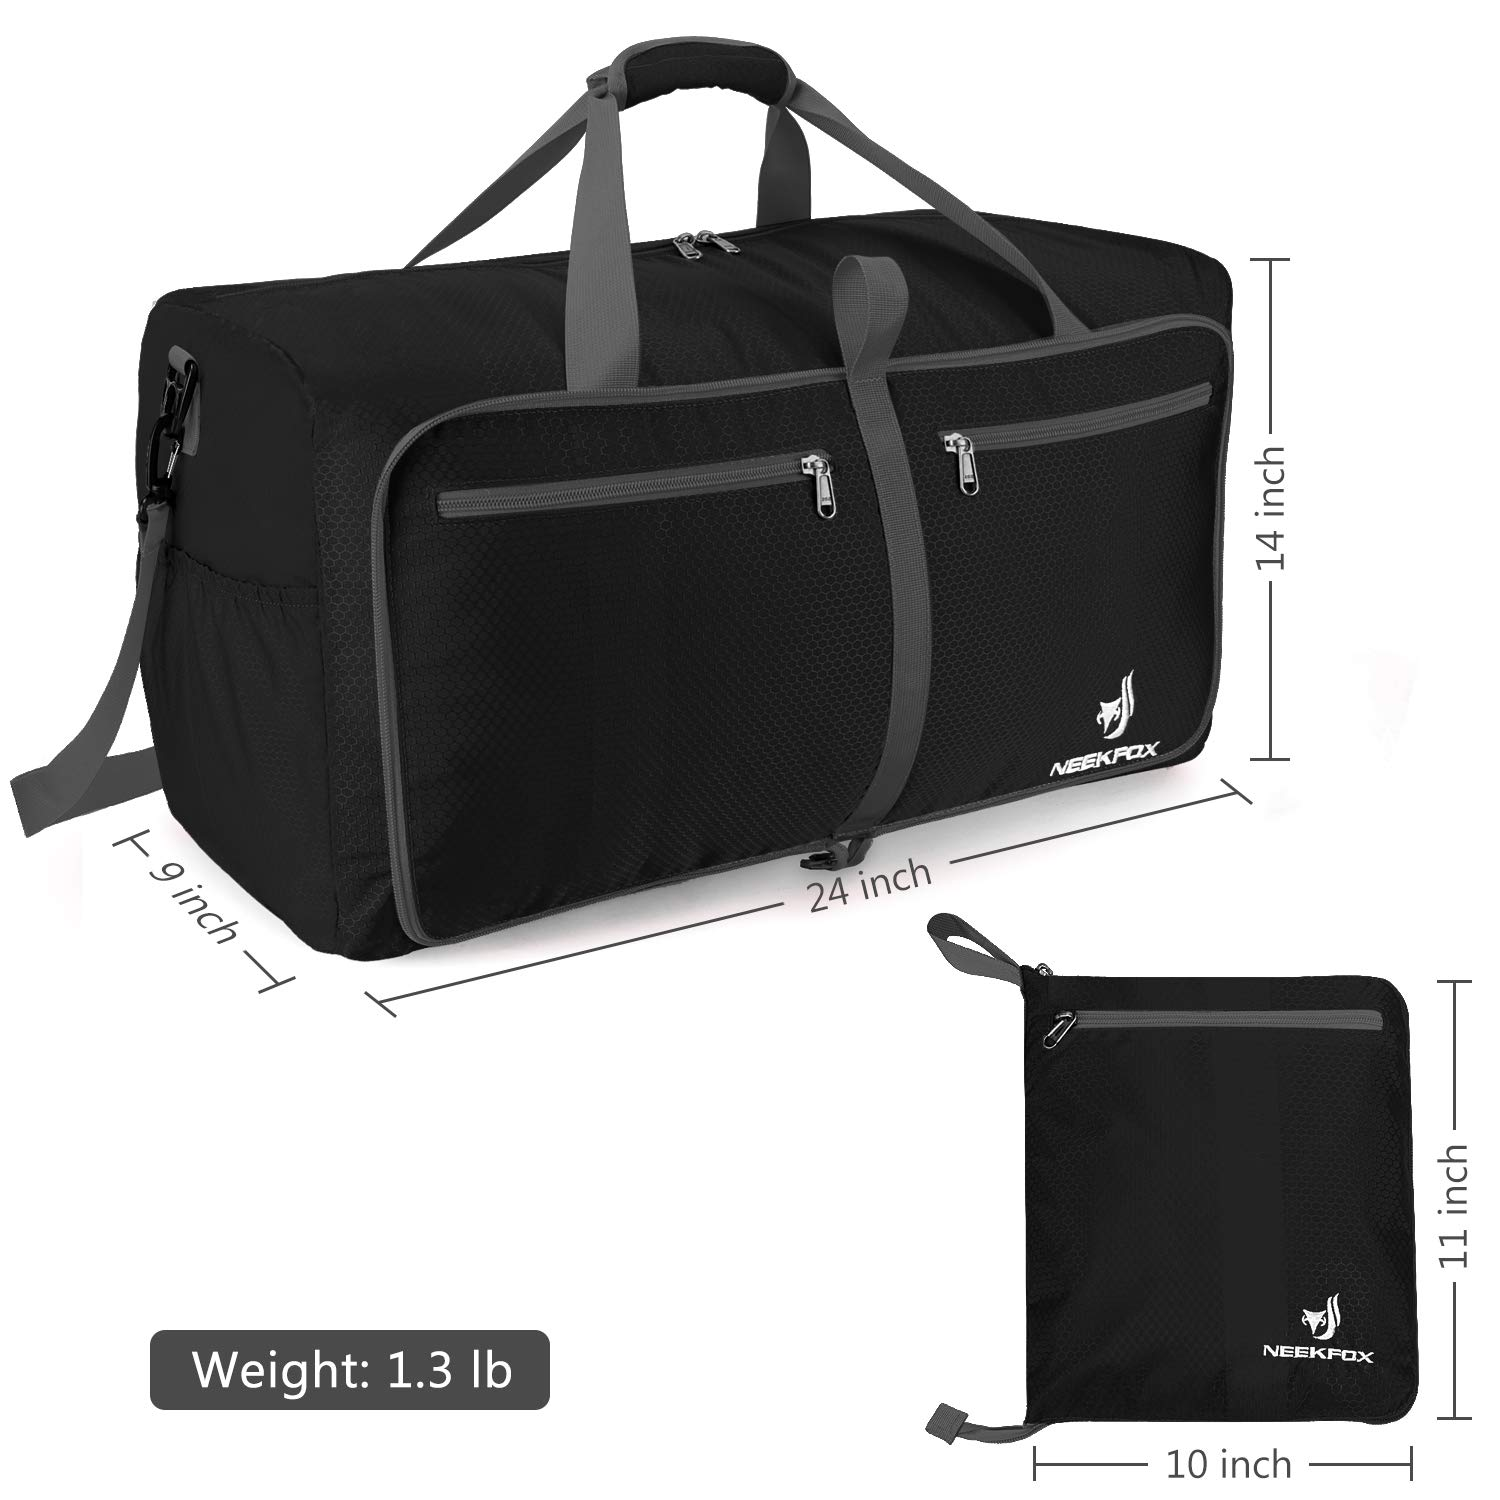 4d5327f73583 Amazon.com  NEEKFOX Foldable Travel Duffel Bag Large Sports Duffle Gym Bag  Packable Lightweight Travel Luggage Bag for Men Women (60L)  Sports    Outdoors